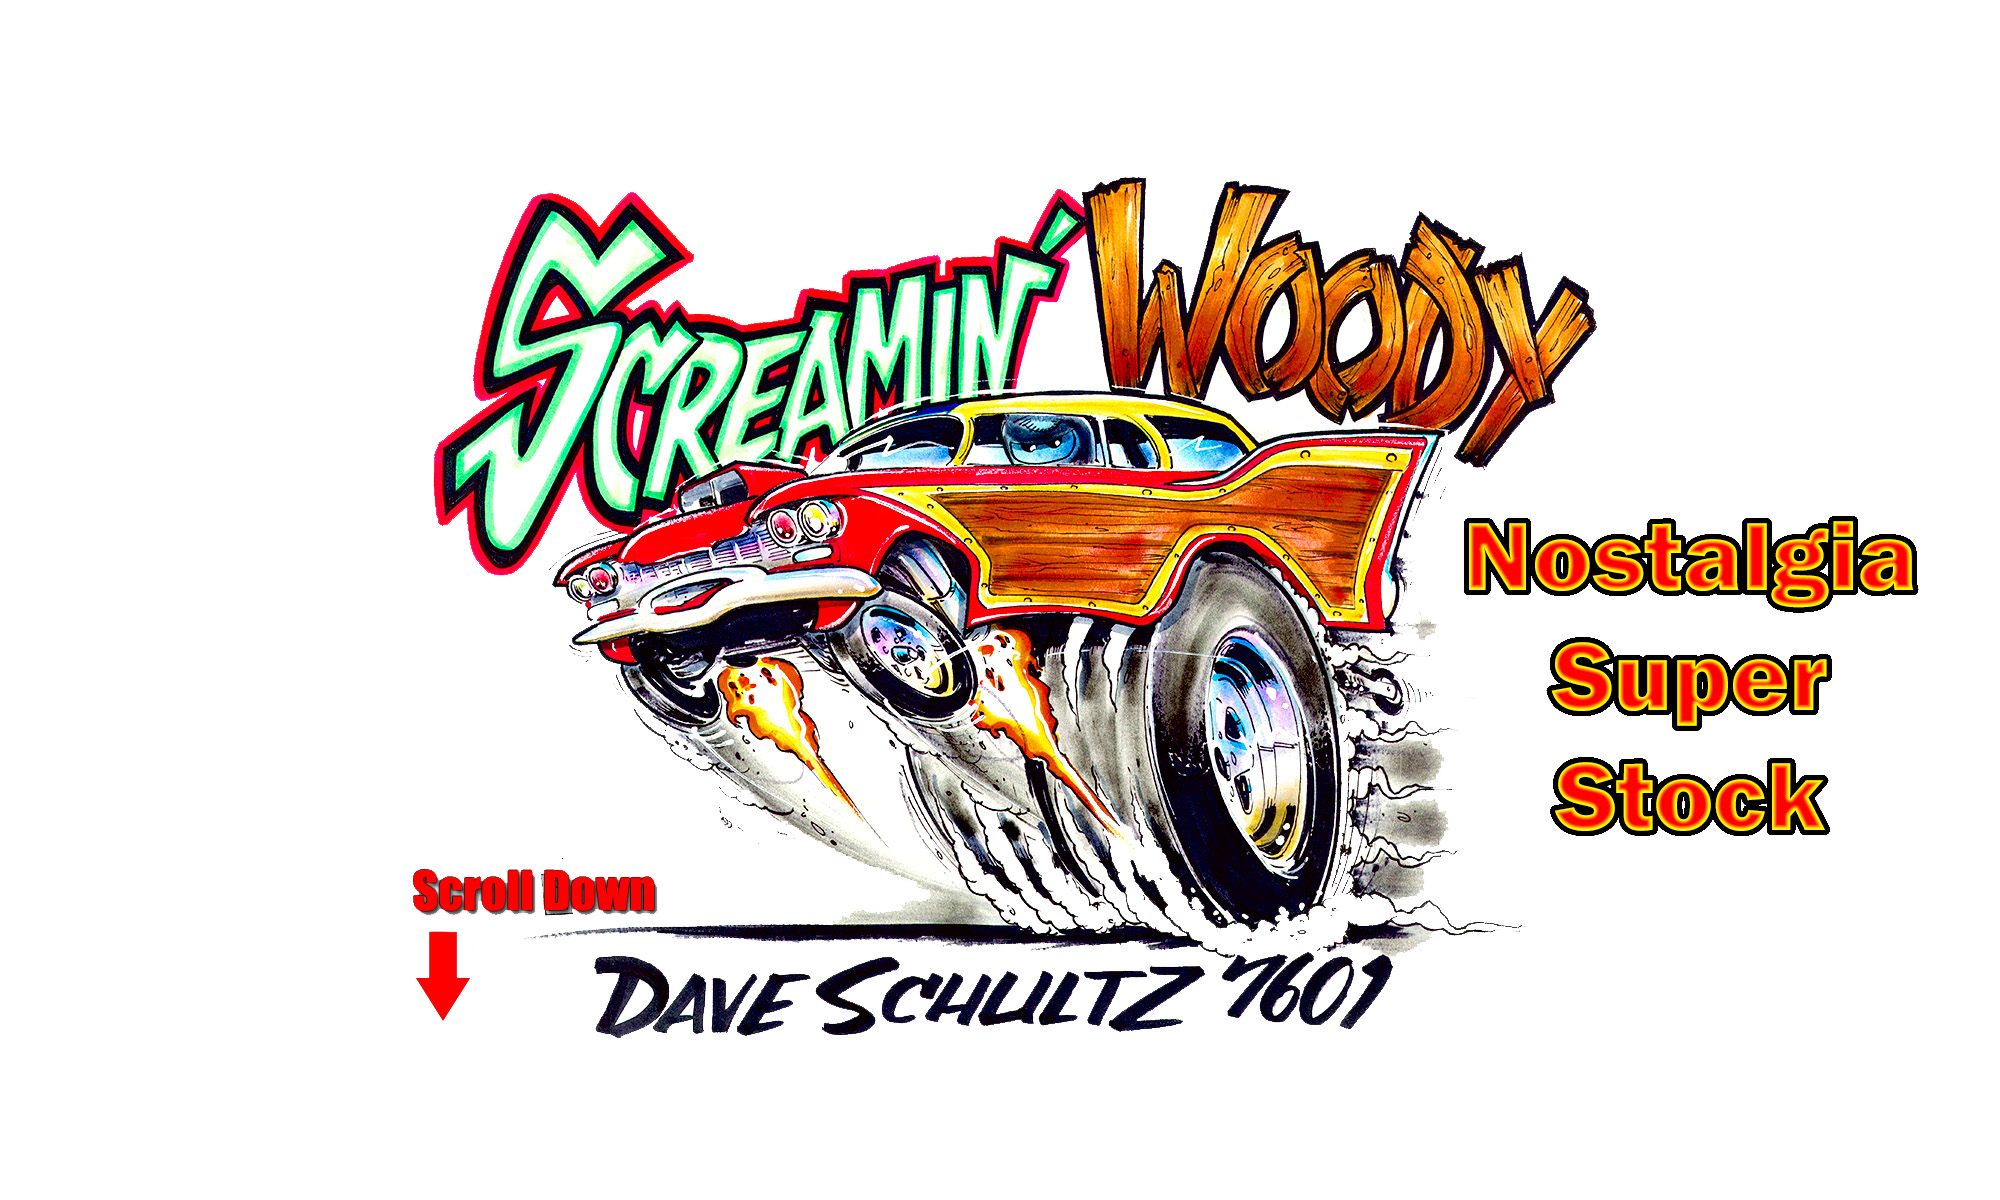 Screamin' Woody